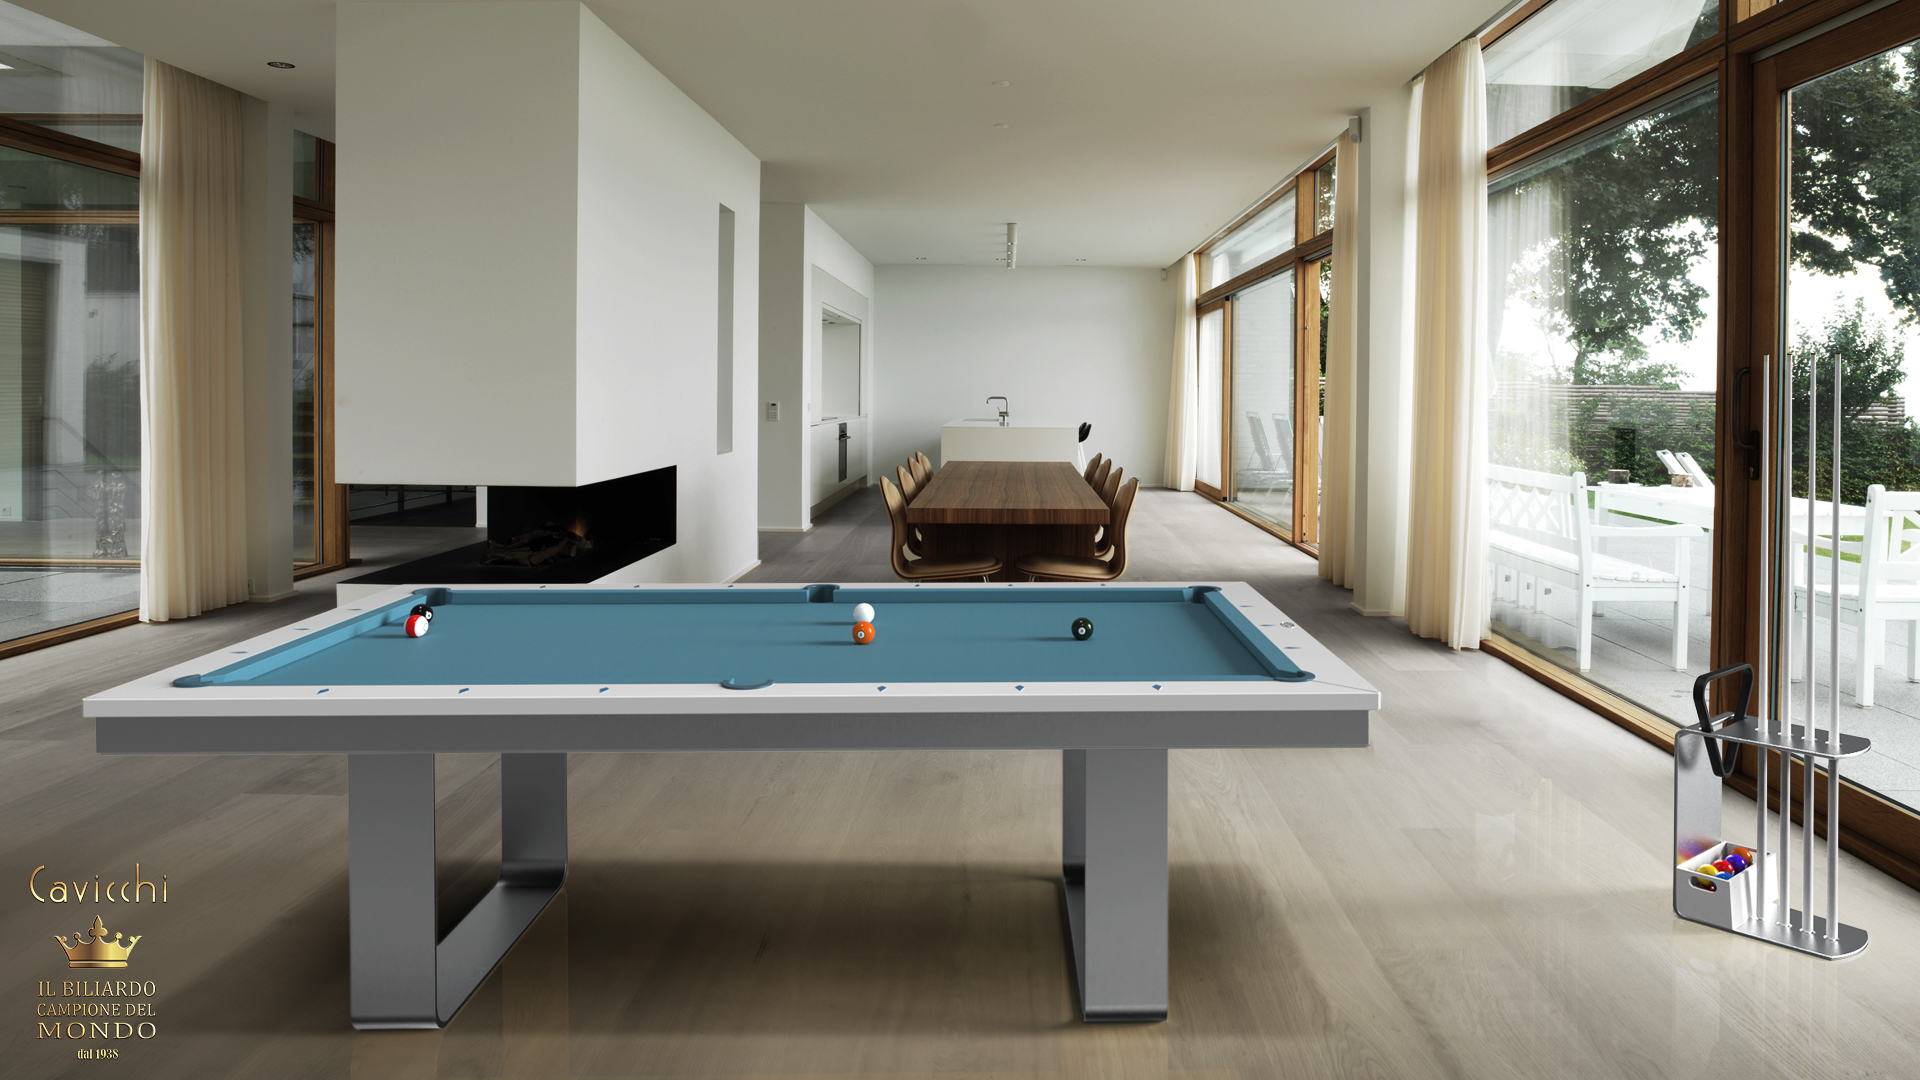 Cavicchi Mistral Deluxe pool table 2